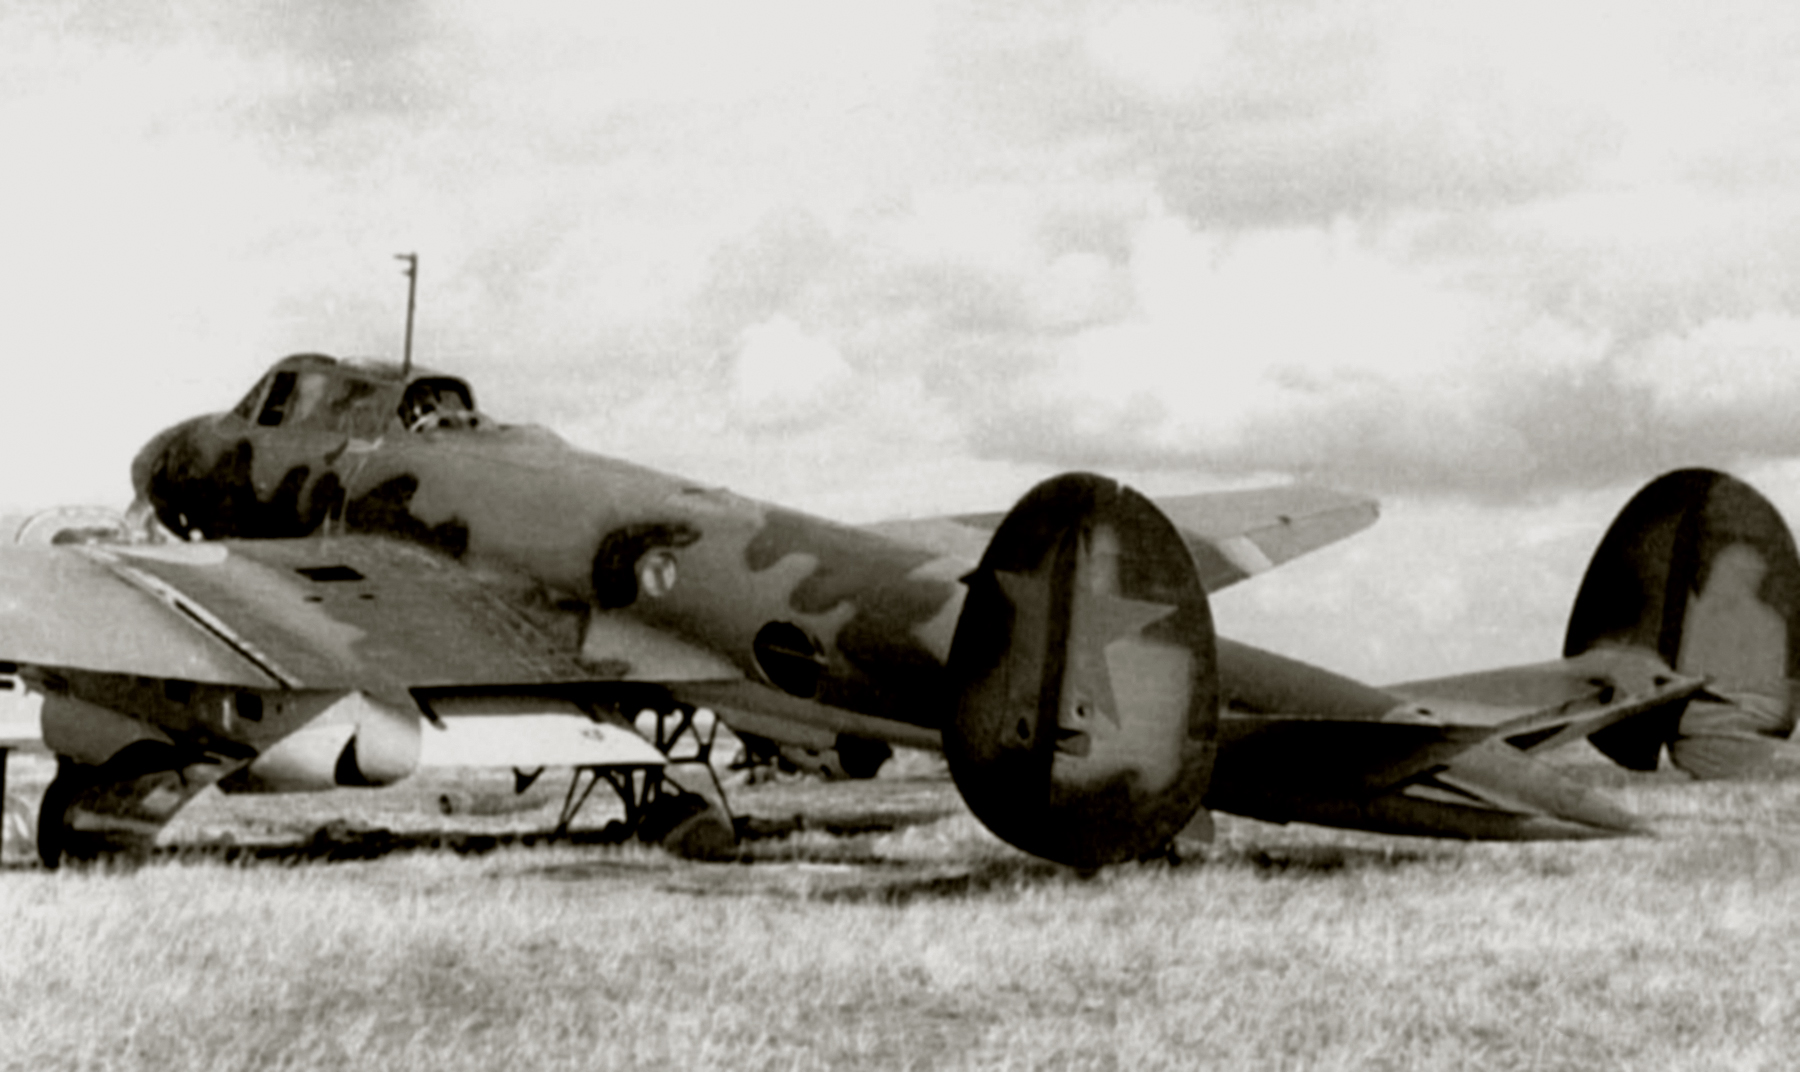 Petlyakov Pe 2 type 1 sn 391317 captured by German forces during Operation Barbarosa Russia 1941 01